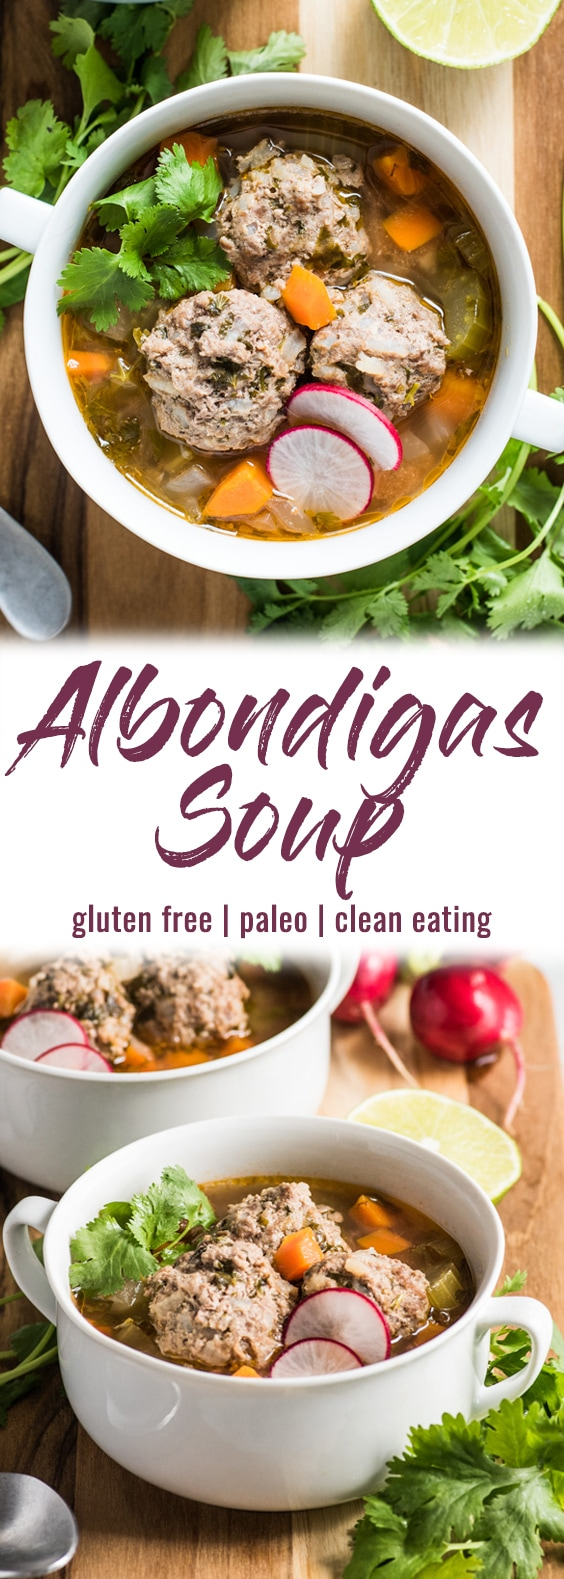 This Albondigas Soup, an authentic Mexican meatball soup, is served in a light and healthy broth full of vegetables and and lean protein! (gluten free, paleo) | isabeleats.com | #meatballs #albondigas #mexican #paleo